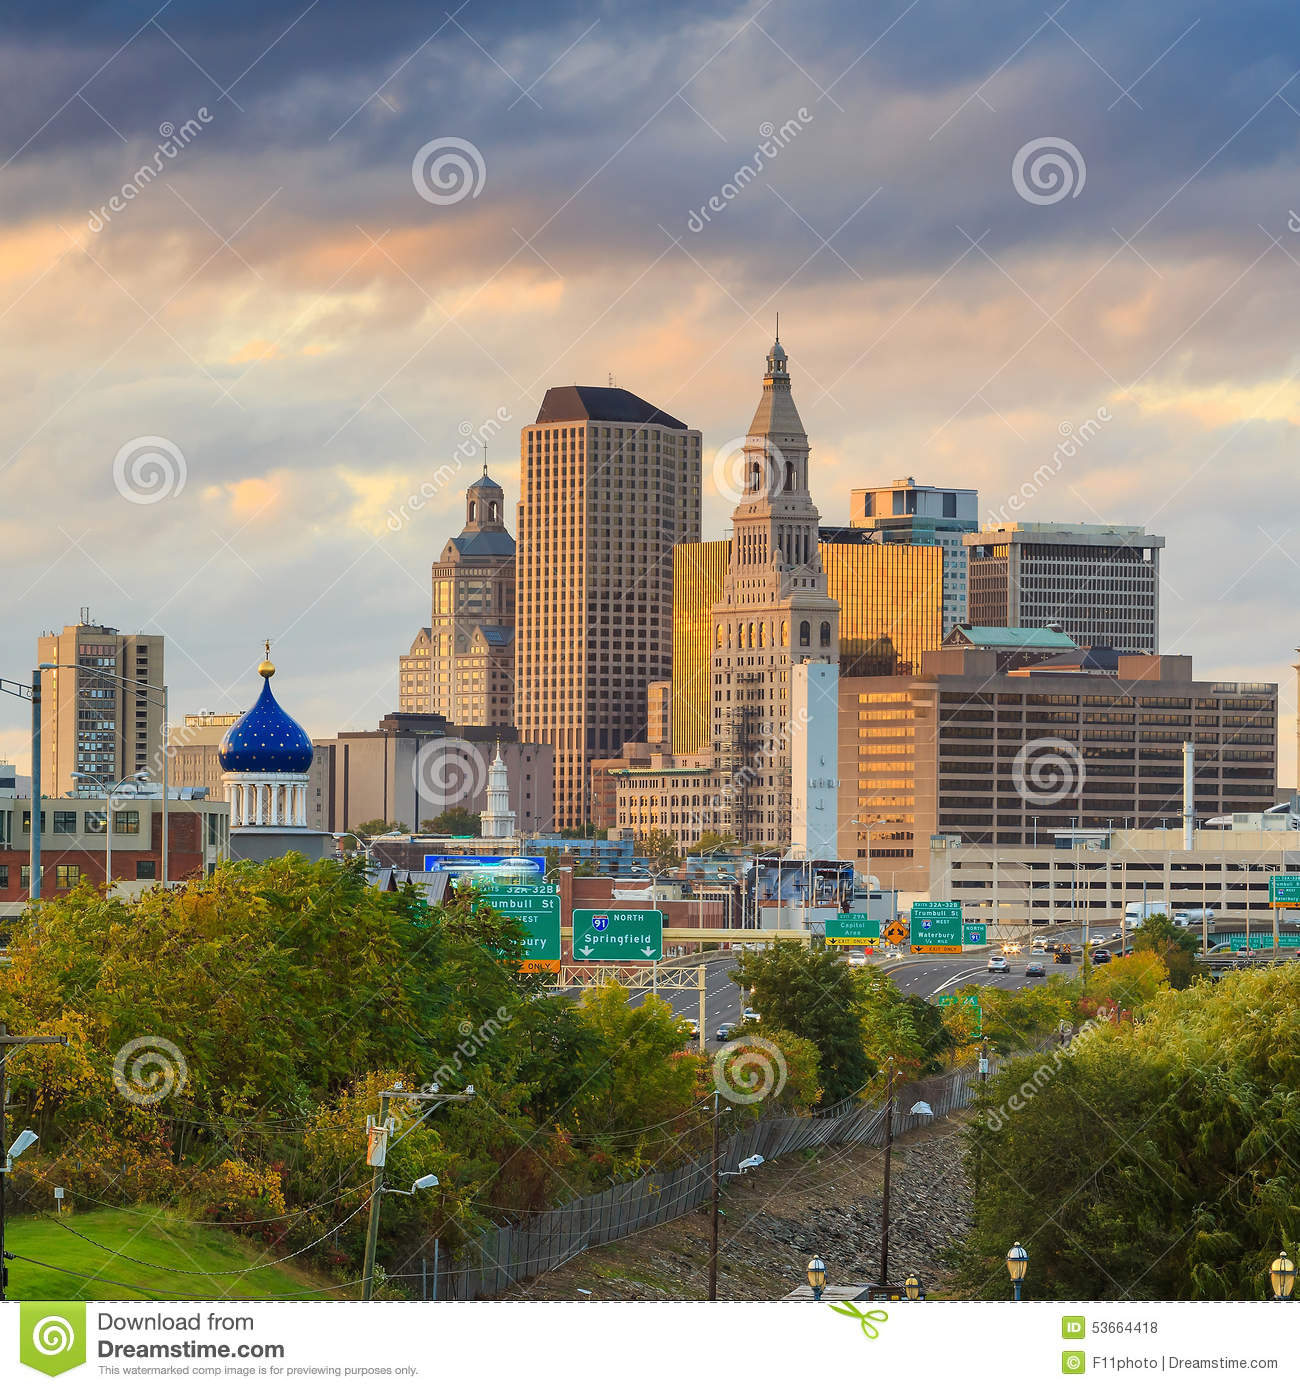 Skyline Of Downtown Hartford, Connecticut From Above